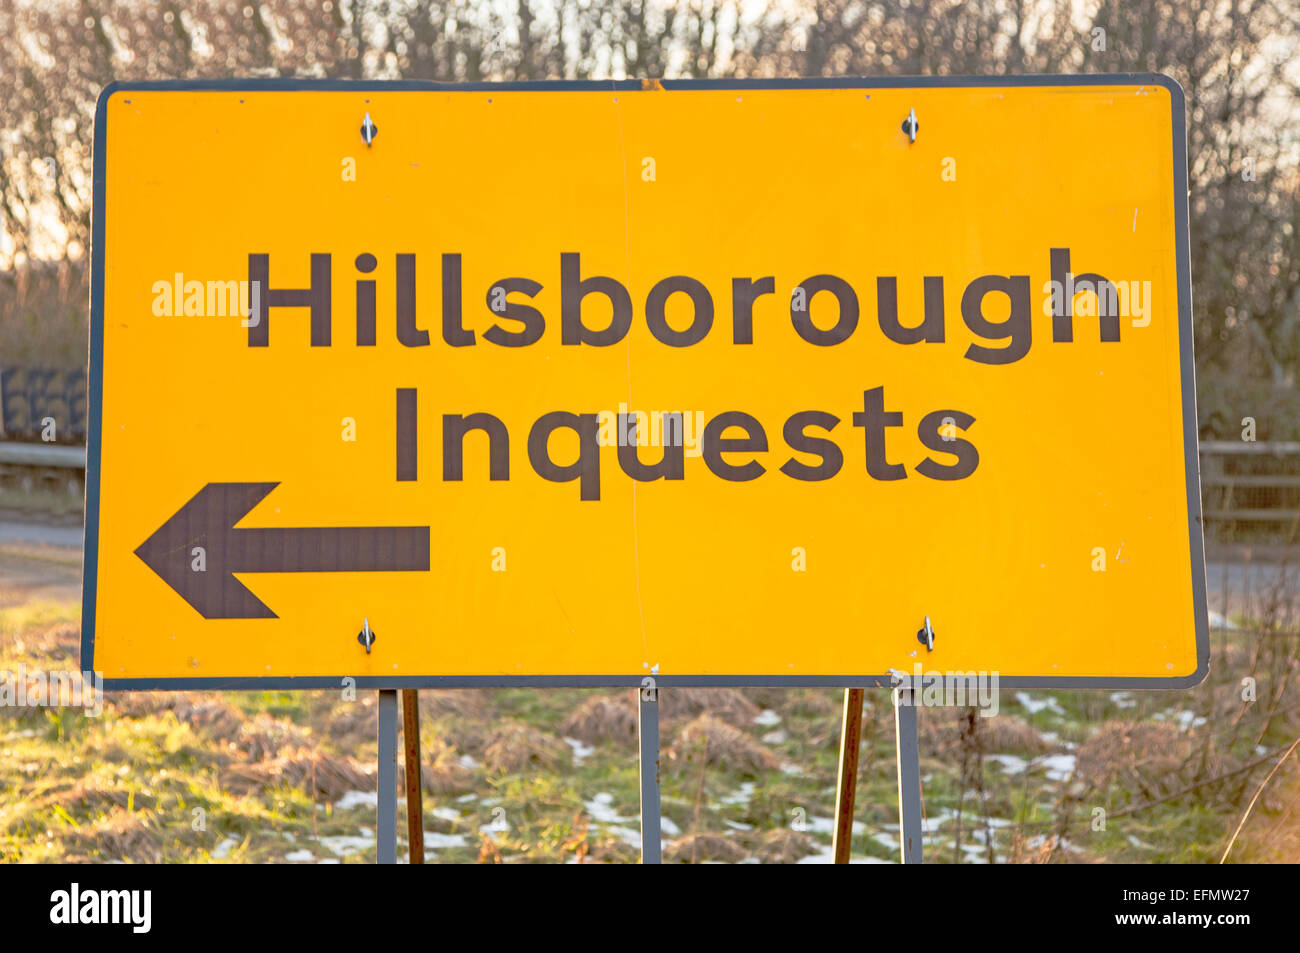 A road sign indicating the way to the Hillsborough disaster inquests near Wigan - Stock Image